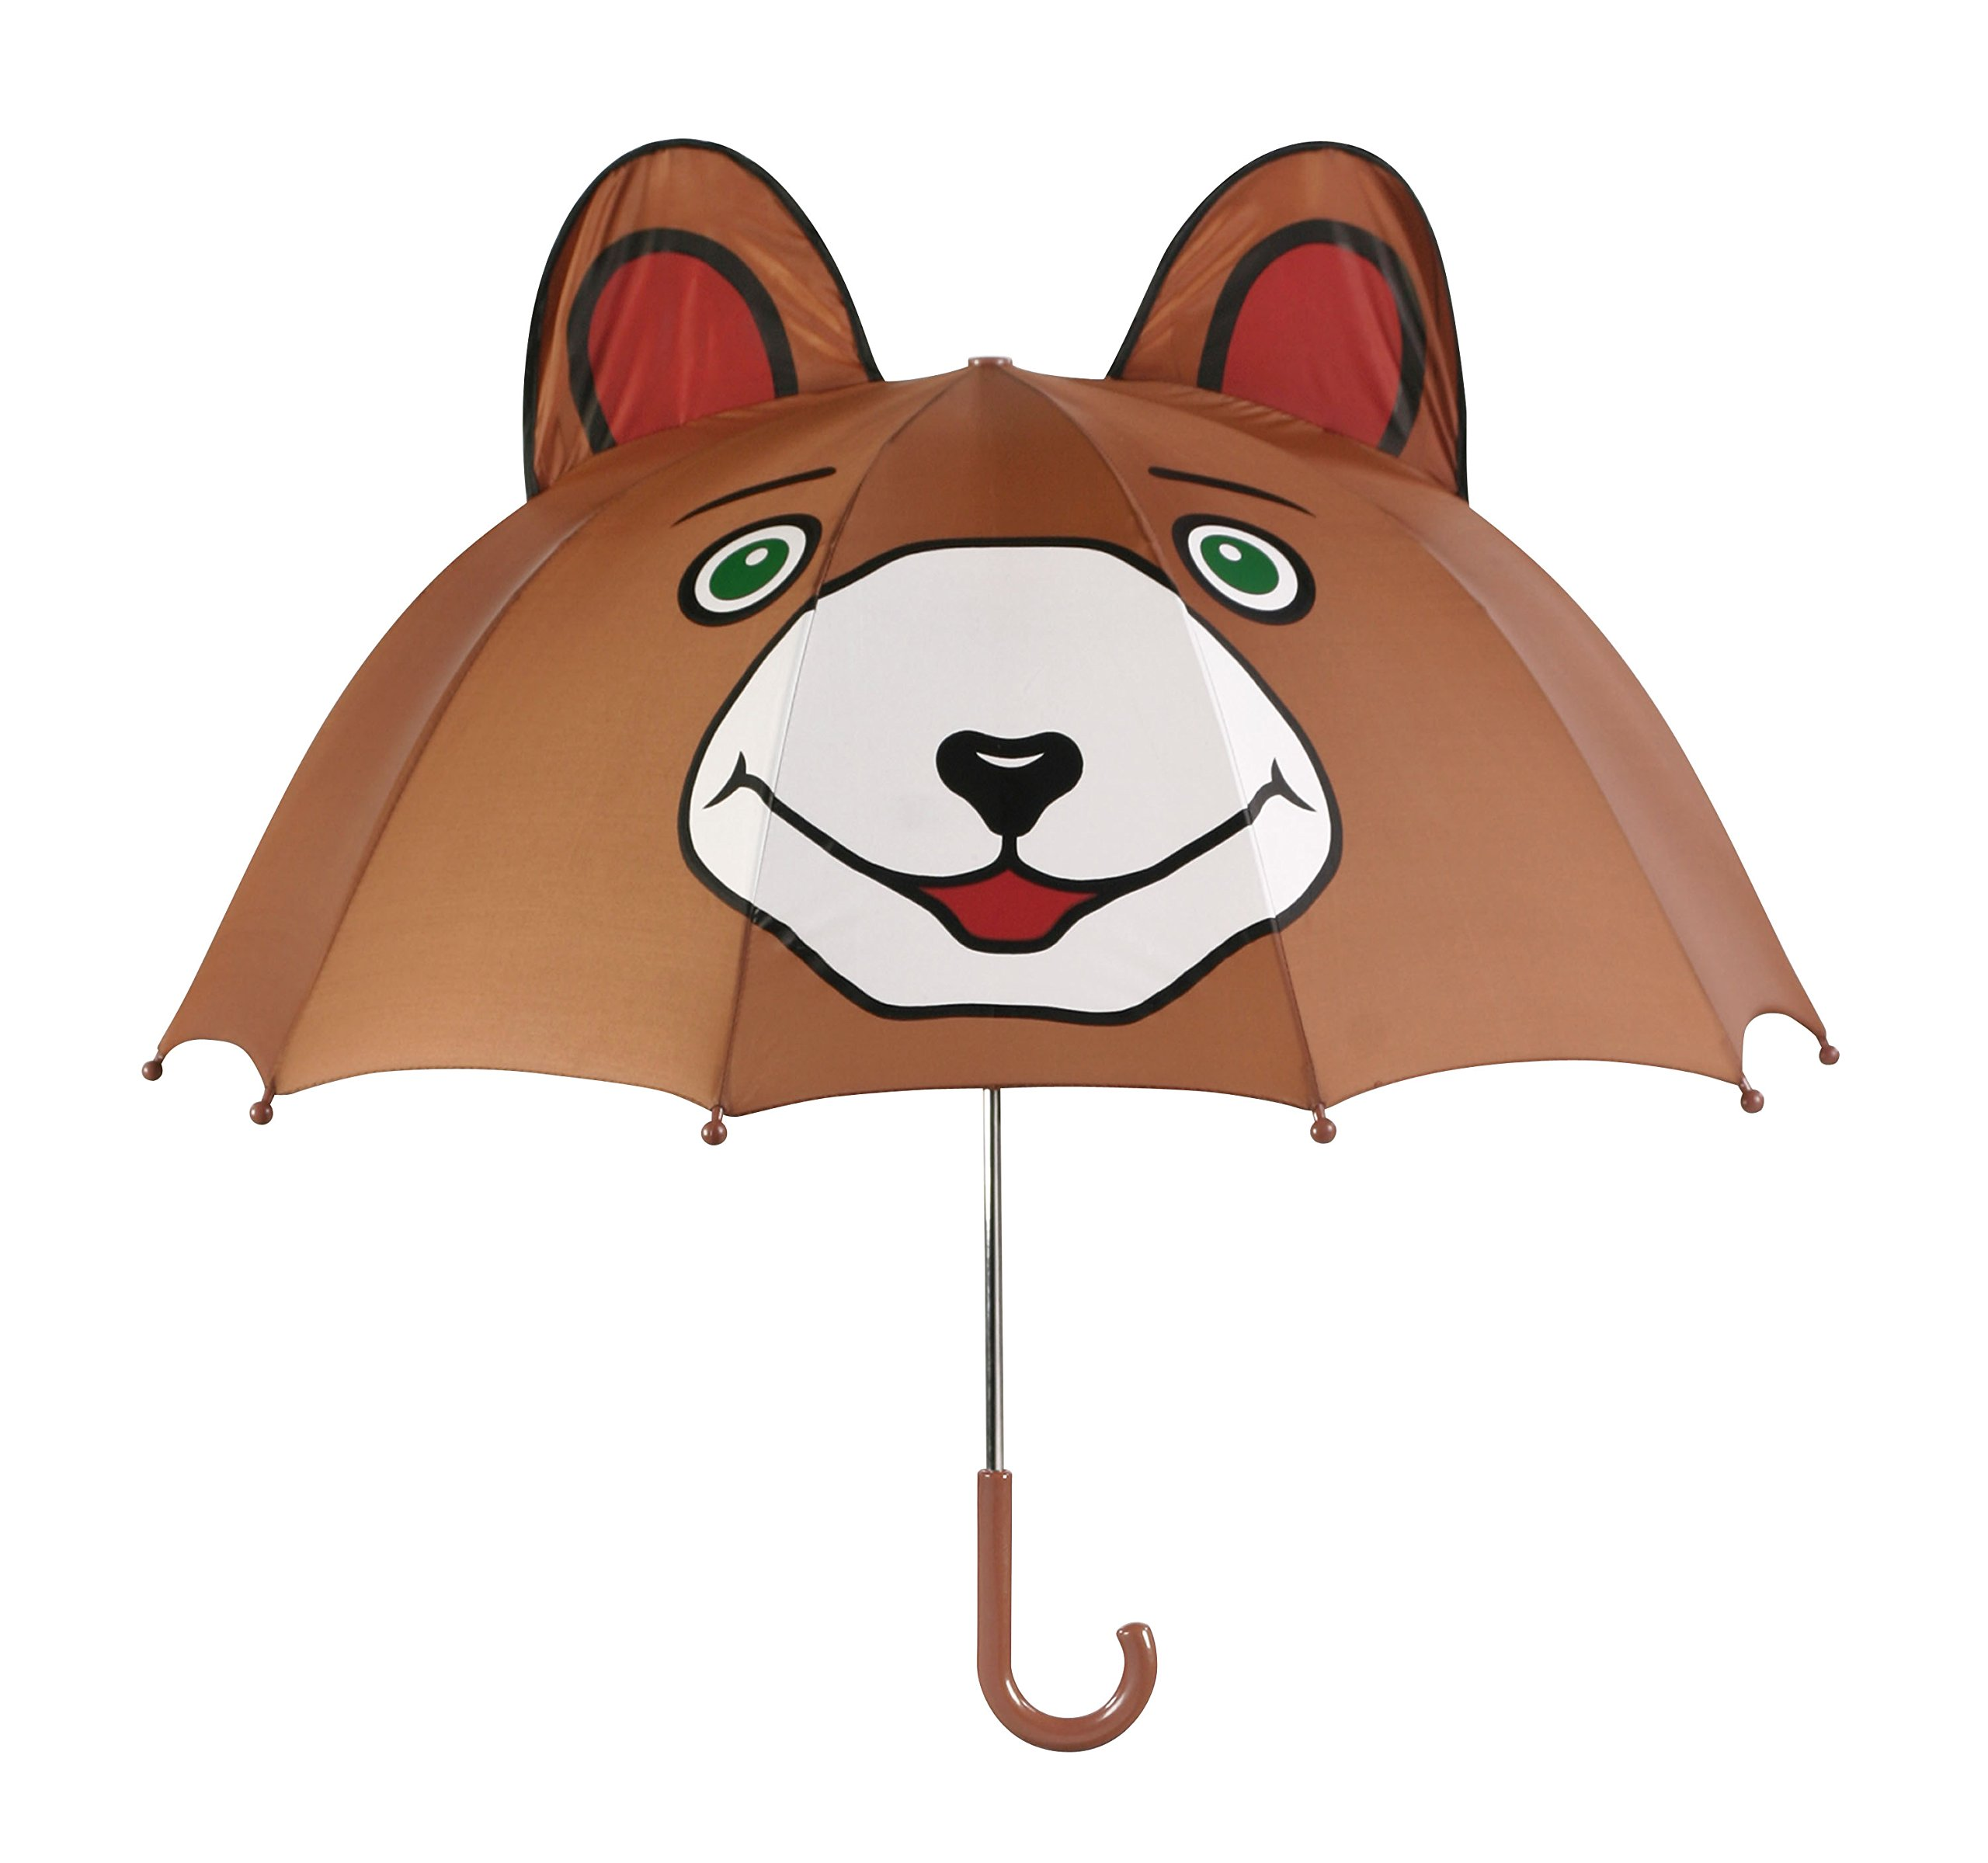 Kidorable Brown Bear Umbrella With Fun Pop-Out Ears Big Smile One Size by Kidorable